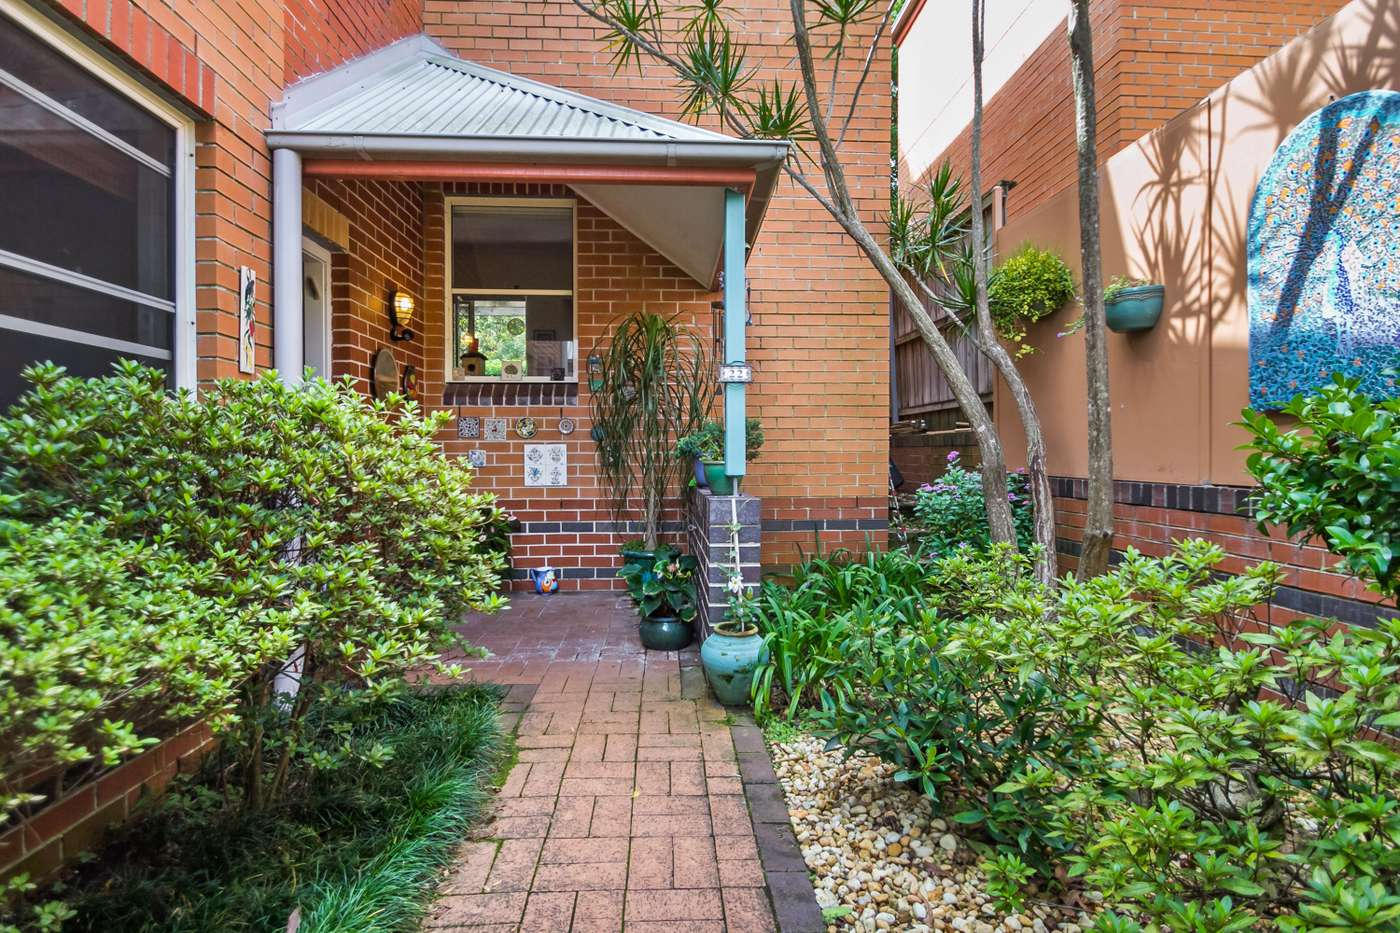 Main view of Homely townhouse listing, 22 Lawson Lane, Naremburn, NSW 2065